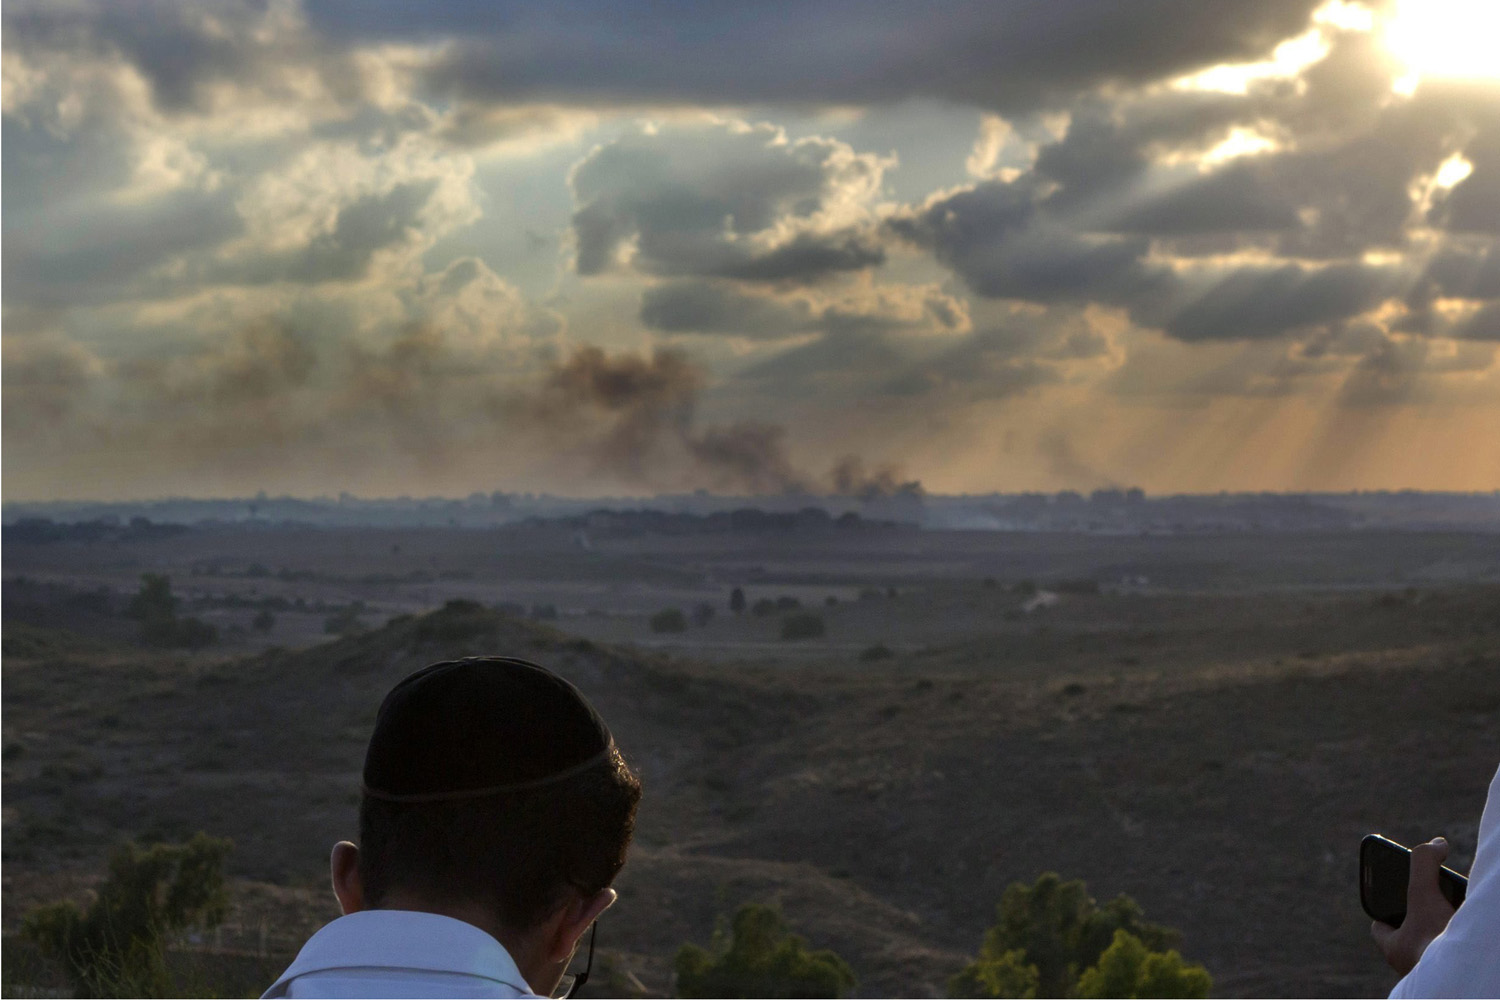 Jul. 17, 2014. Religious Israelis sit on a hill overlooking the Gaza Strip where black smoke rises from an Israeli air strike  as the sun sets.